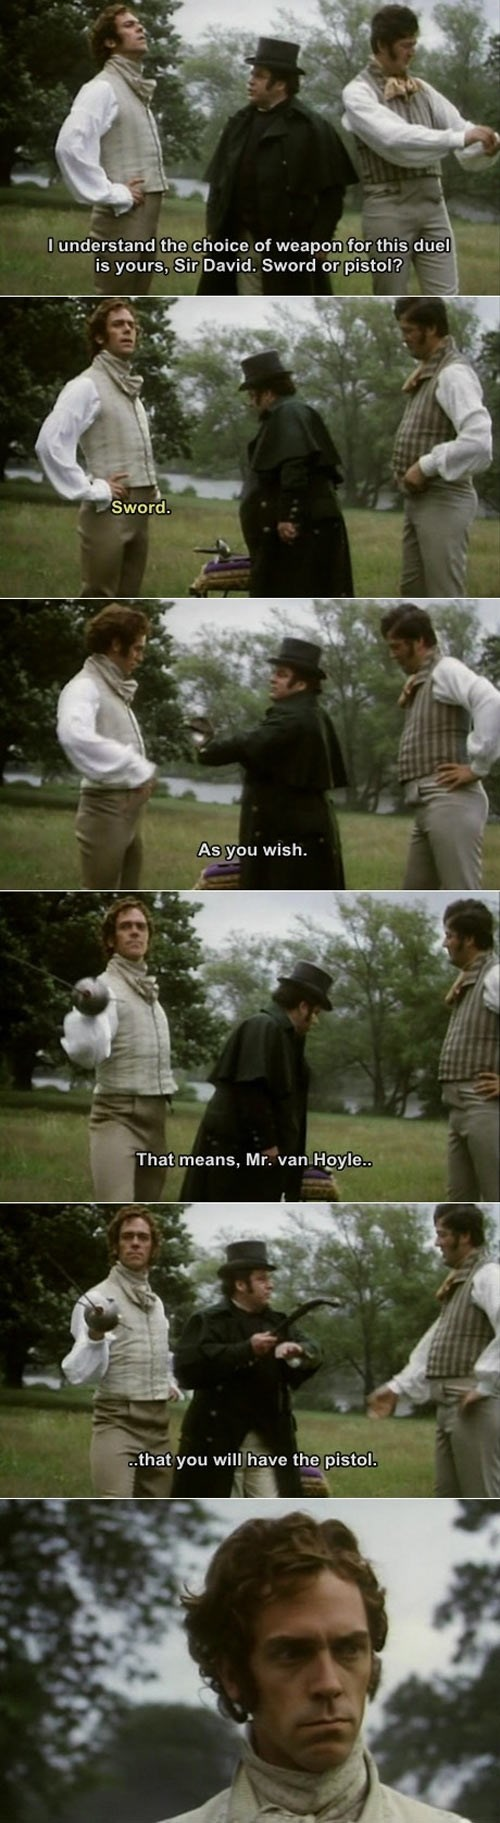 duel hugh laurie Stephen Fry a bit of fry and laurie pistols at dawn - 7958385152